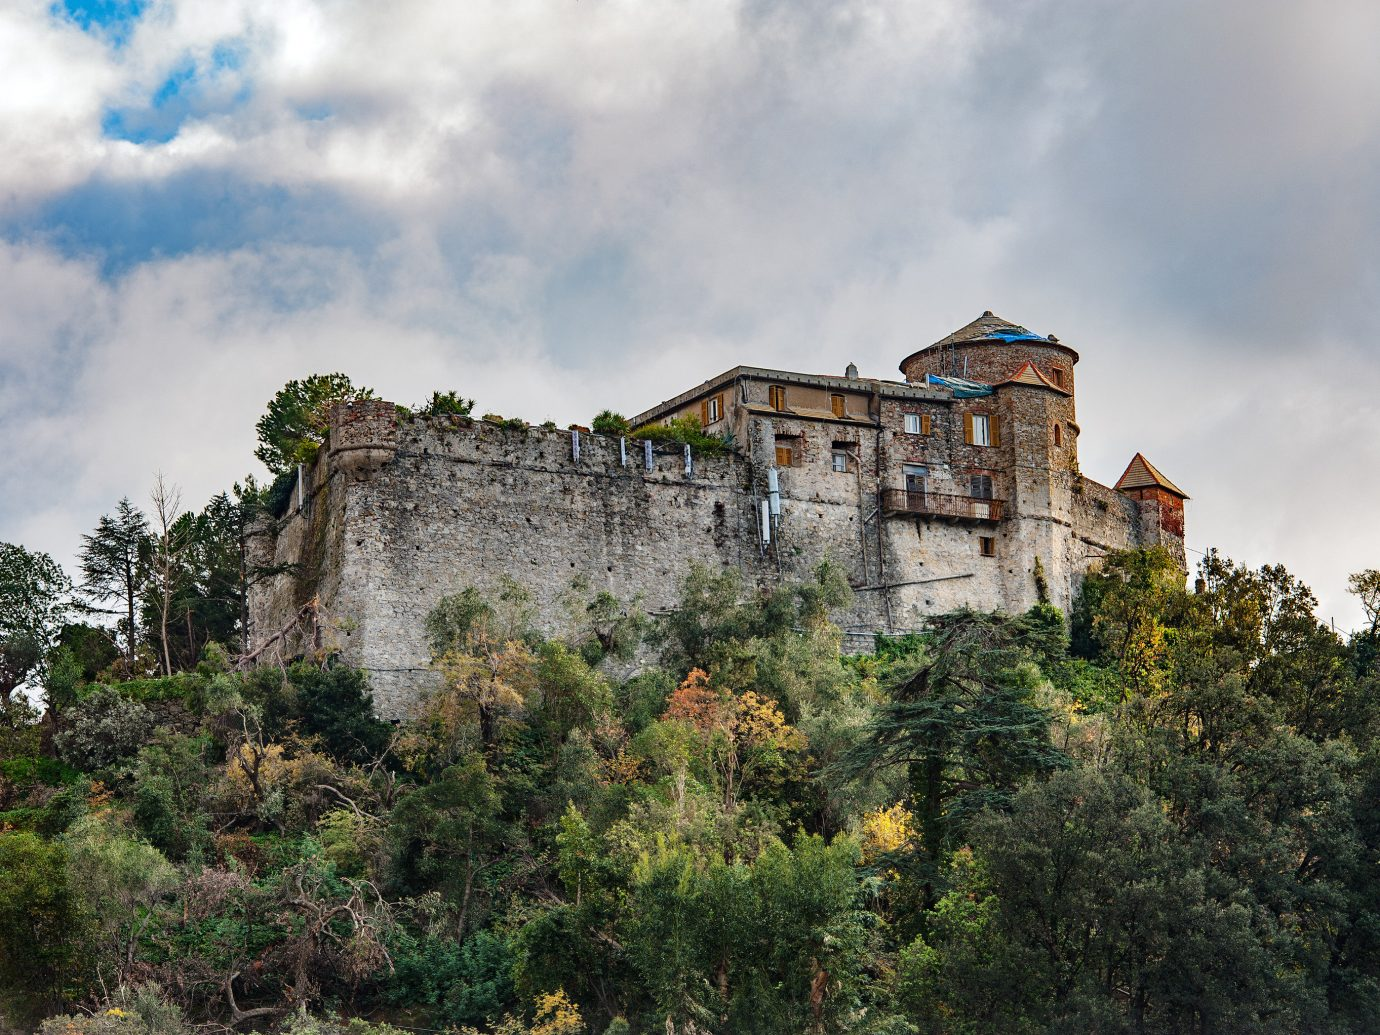 Italy Trip Ideas sky castle château building cloud tree Village estate fortification medieval architecture Ruins mountain ancient history house facade history landscape